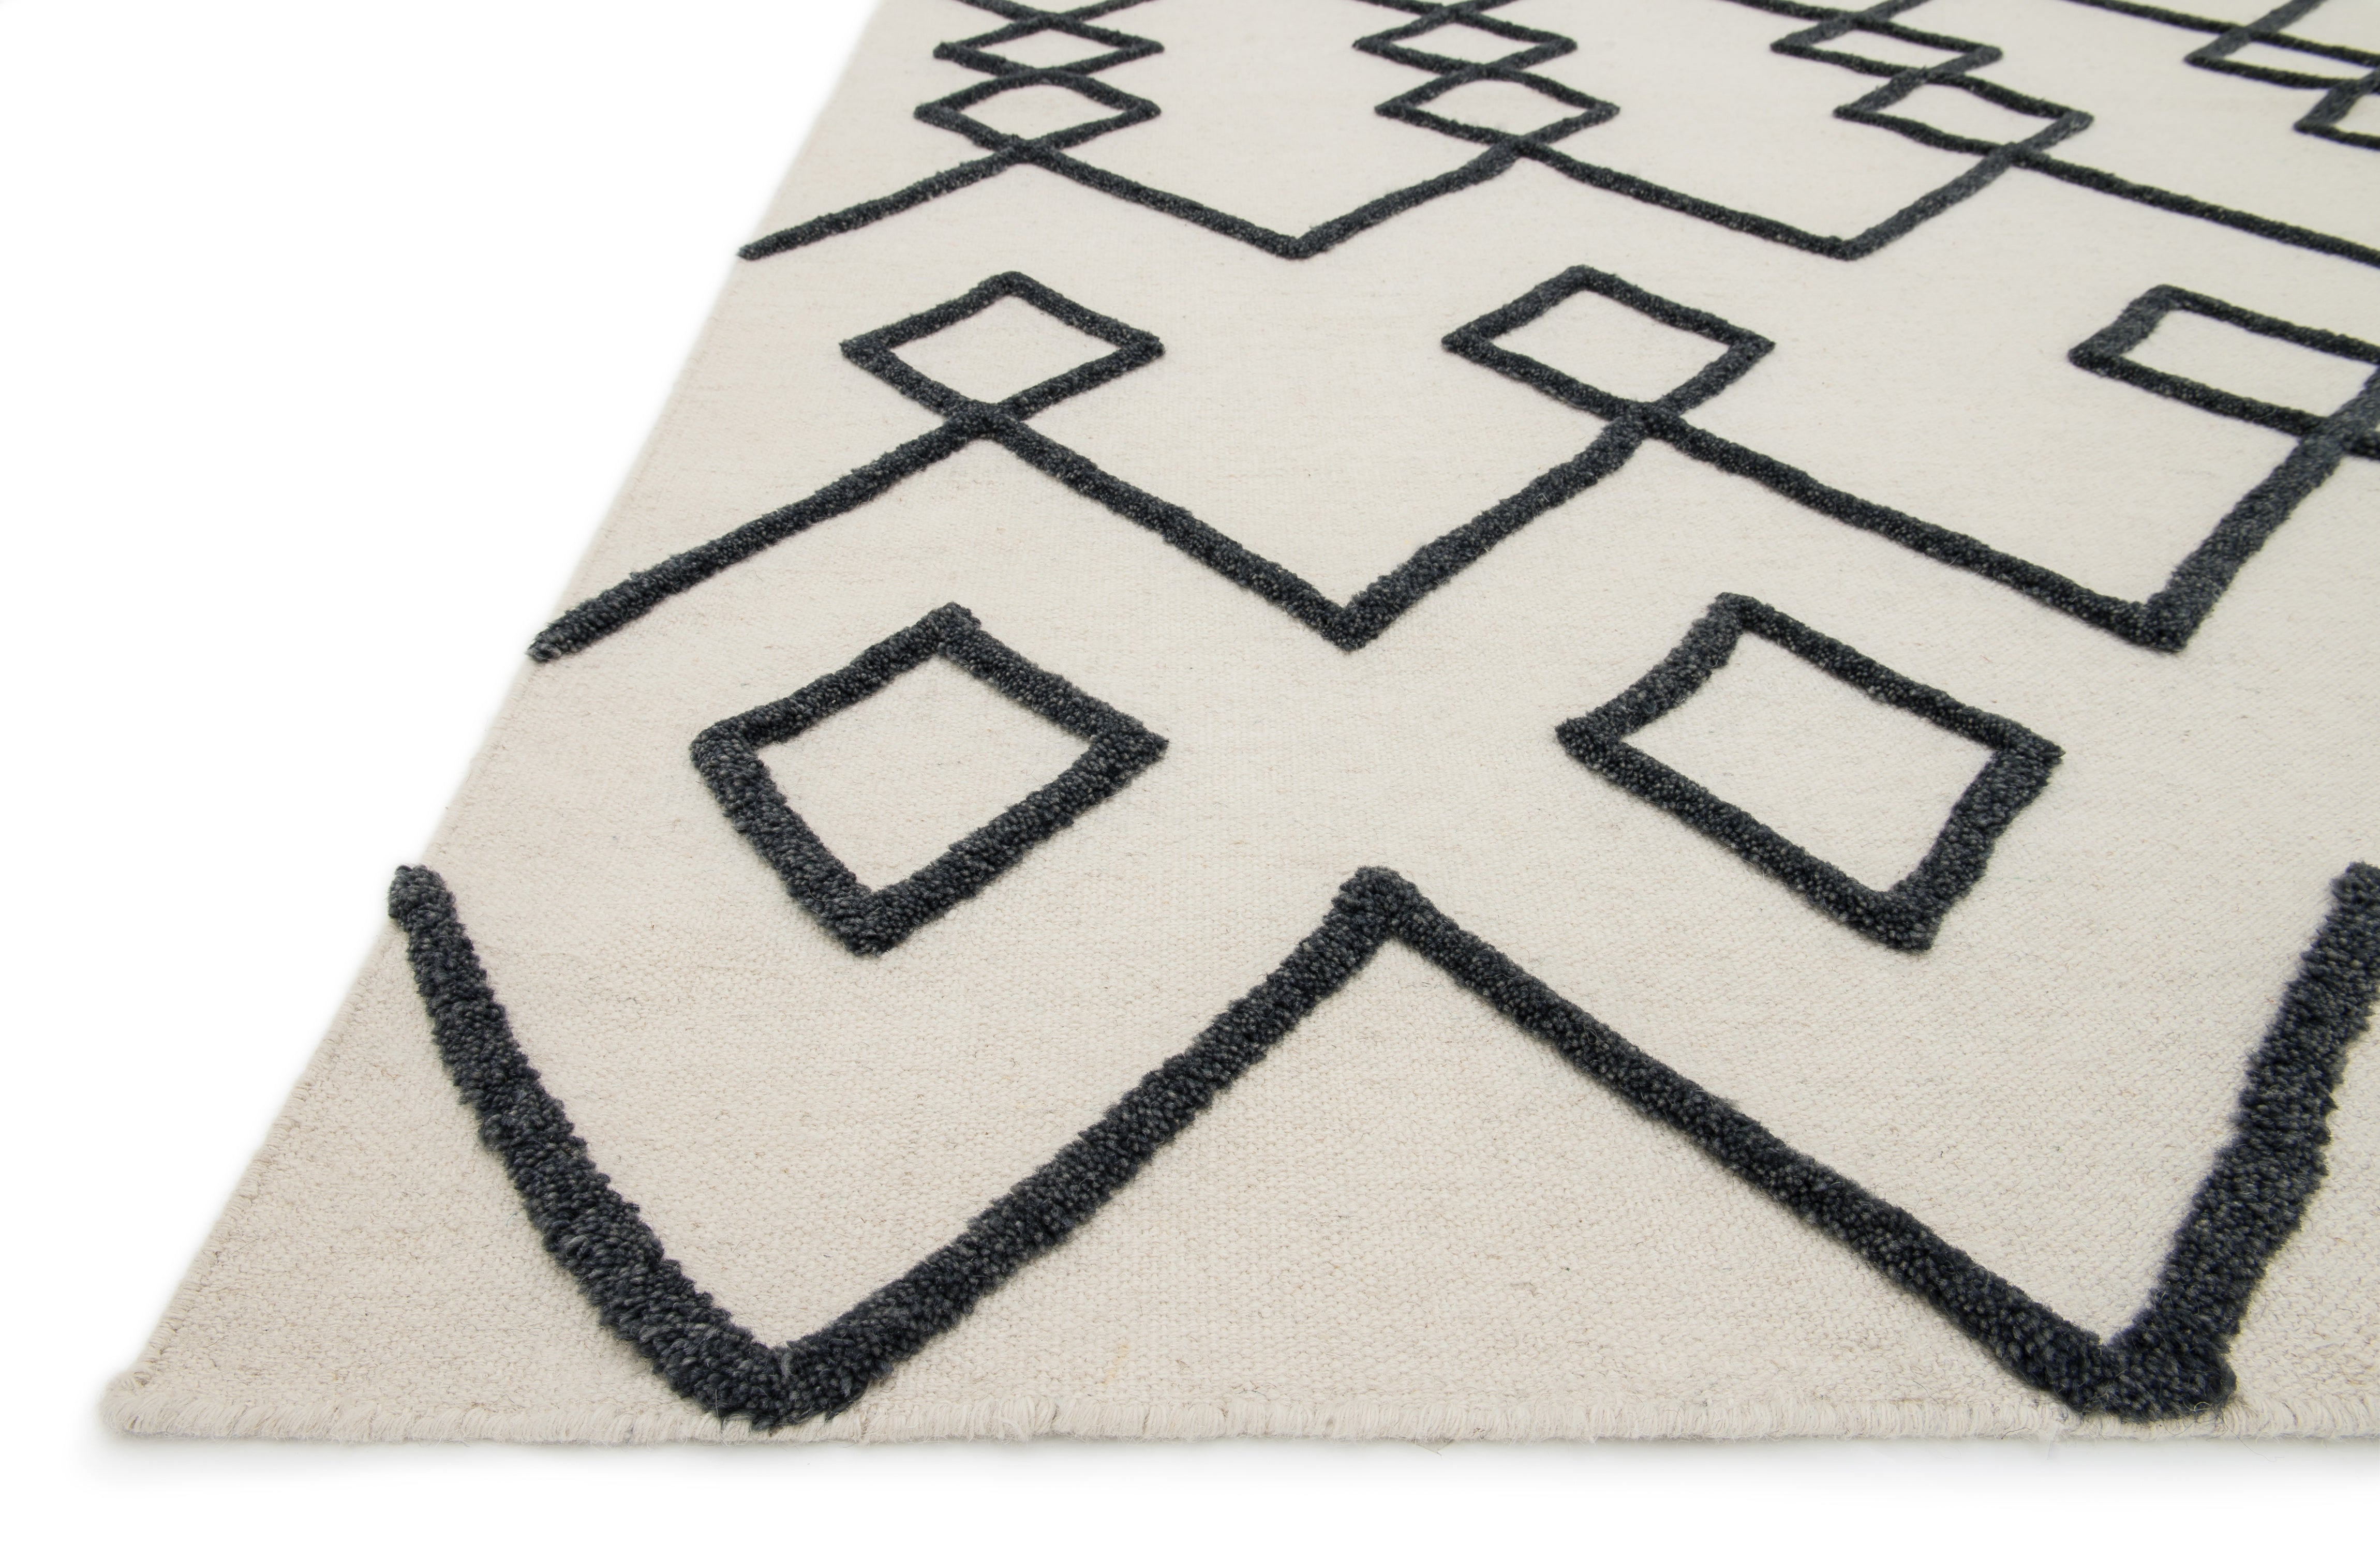 The Bowery Rug